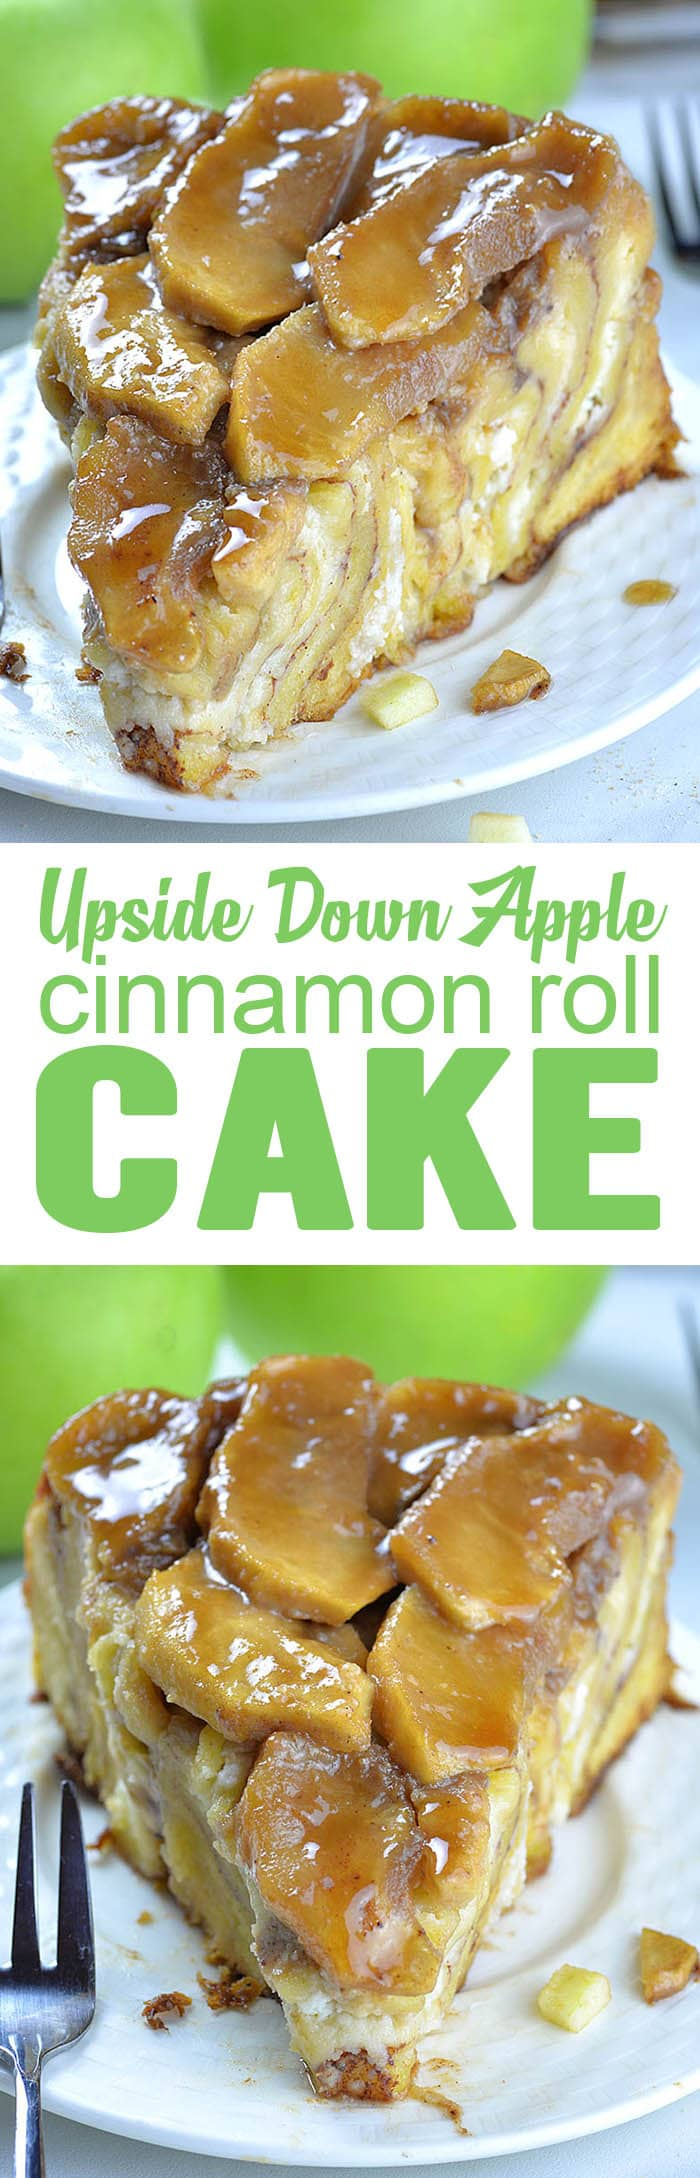 Upside Down Apple Cinnamon Roll Cake is like giant cinnamon roll, only better having cream cheese filling and ooey-gooey homemade caramel sauce and fresh apples on top. Serve it up for breakfast or brunch, or simply as a dessert or snack. It's so delicious and comforting, perfect for fall baking season!